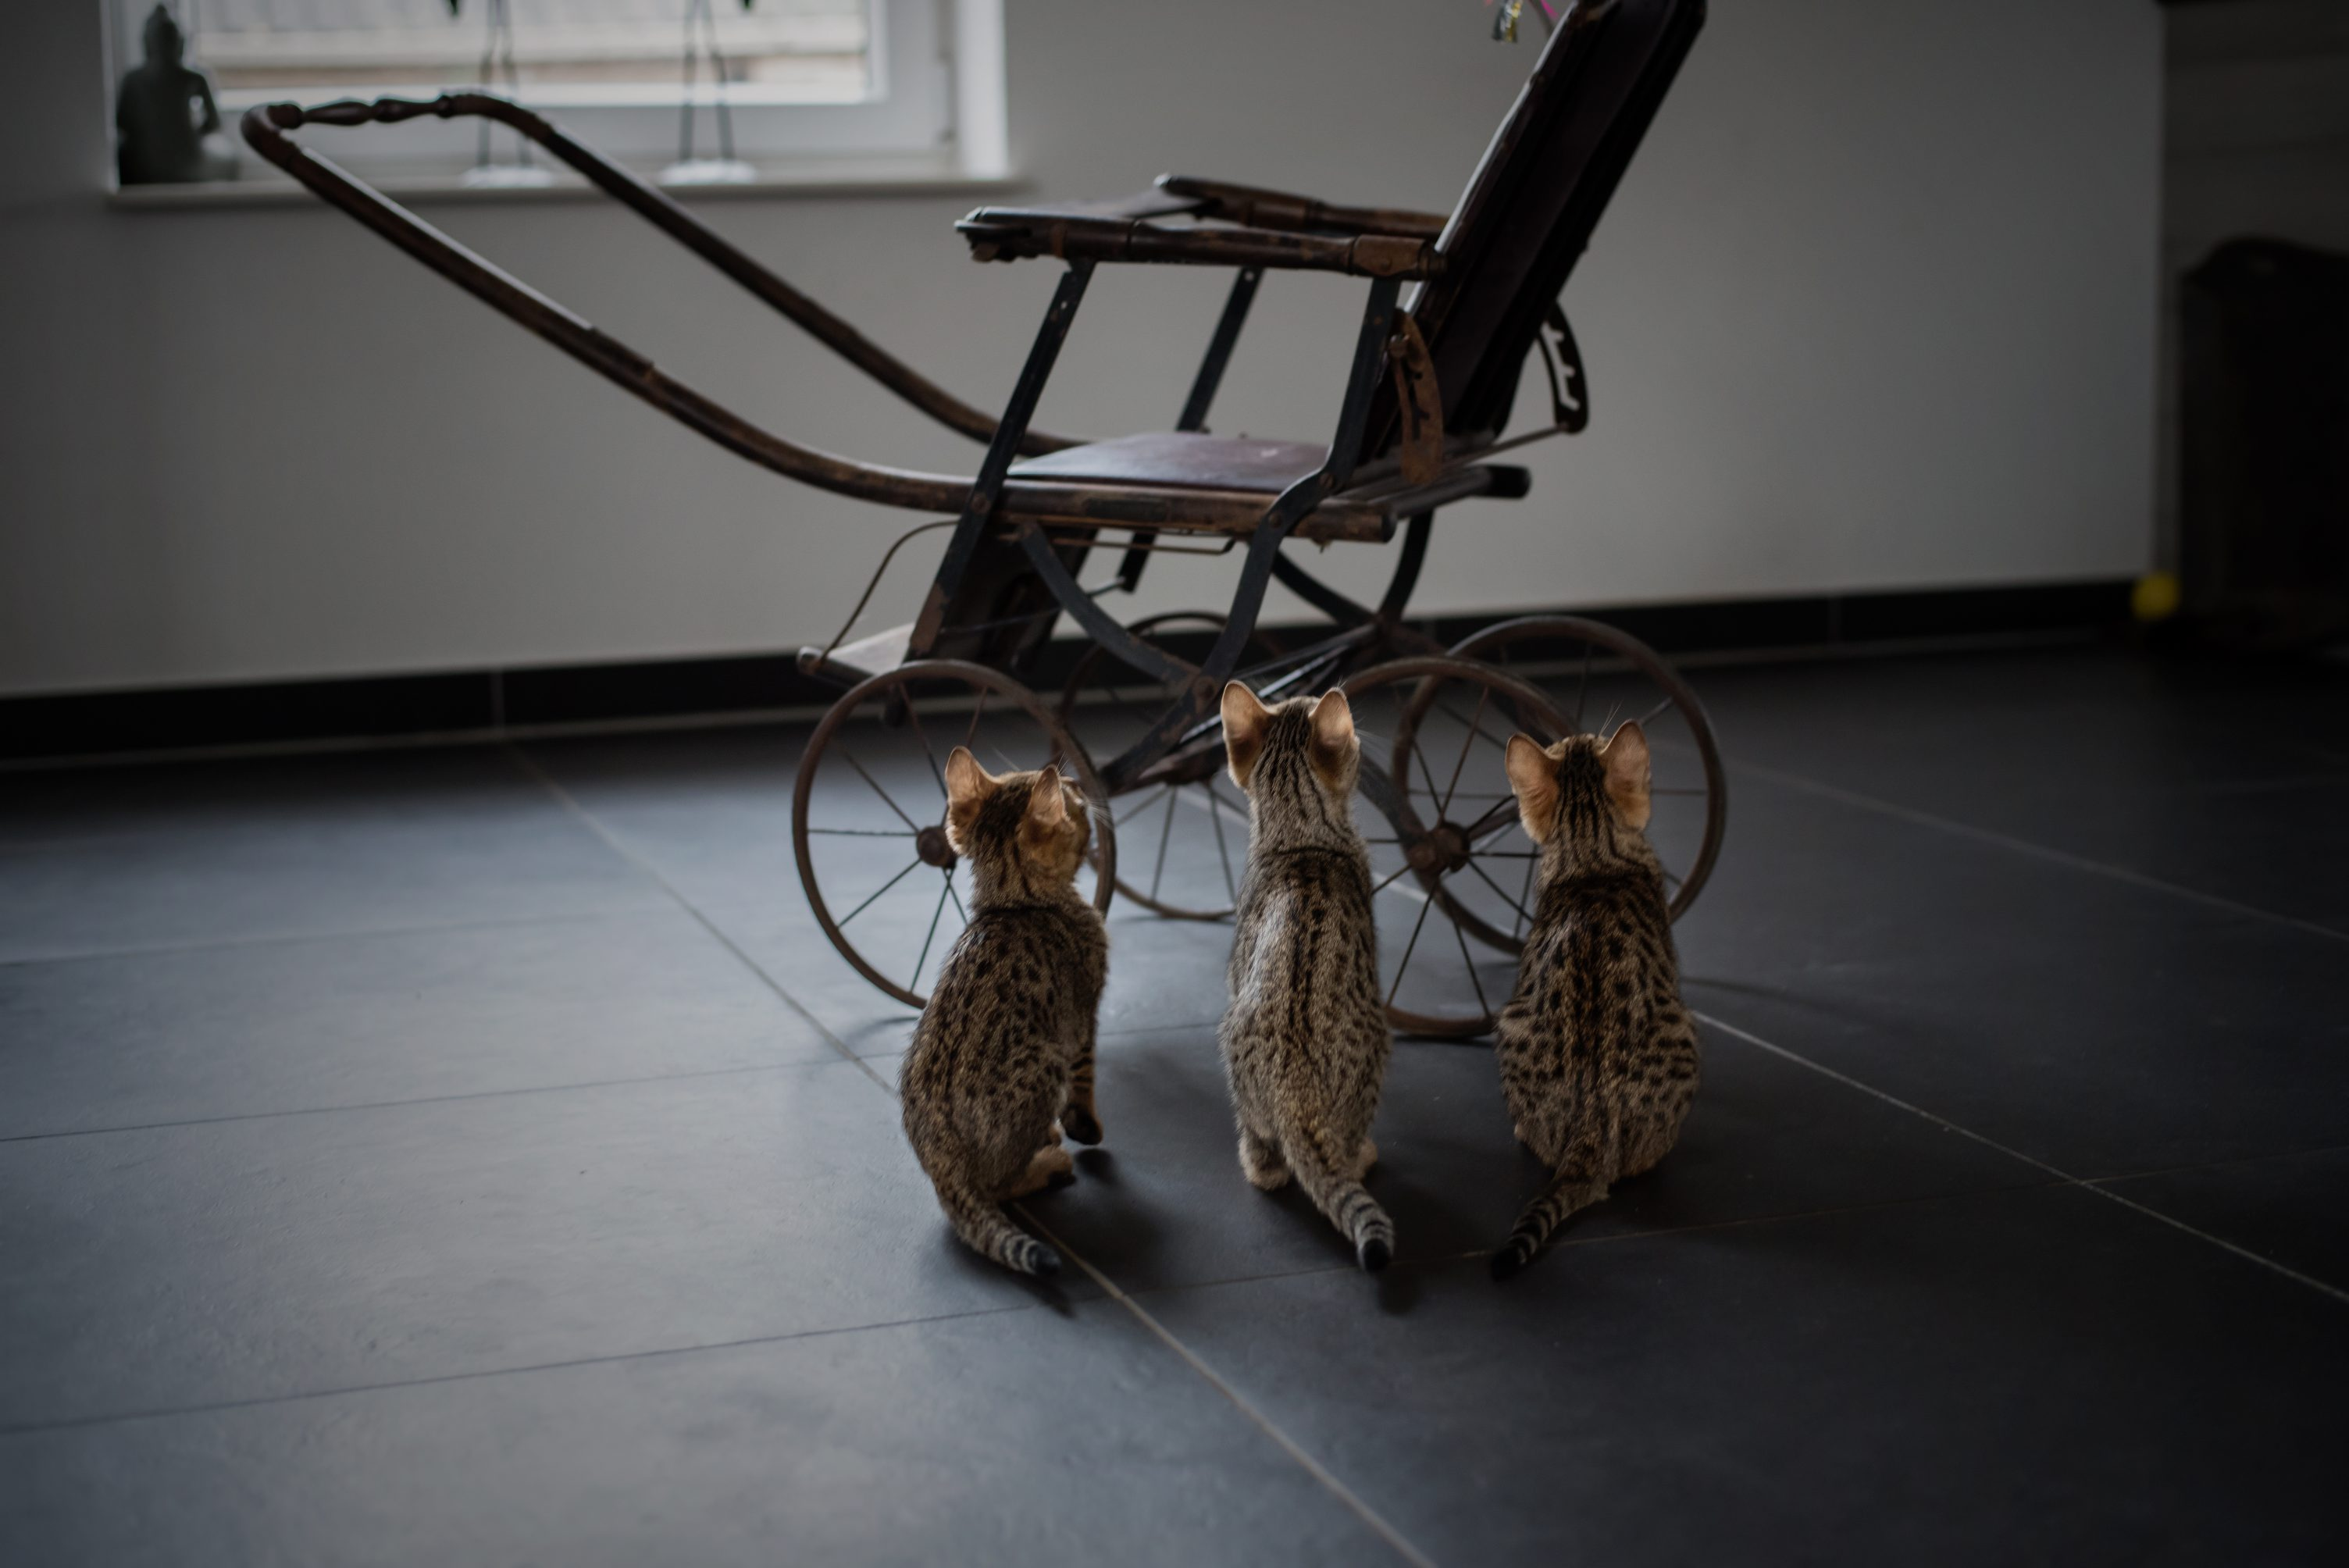 Savannah kittens photoshoot